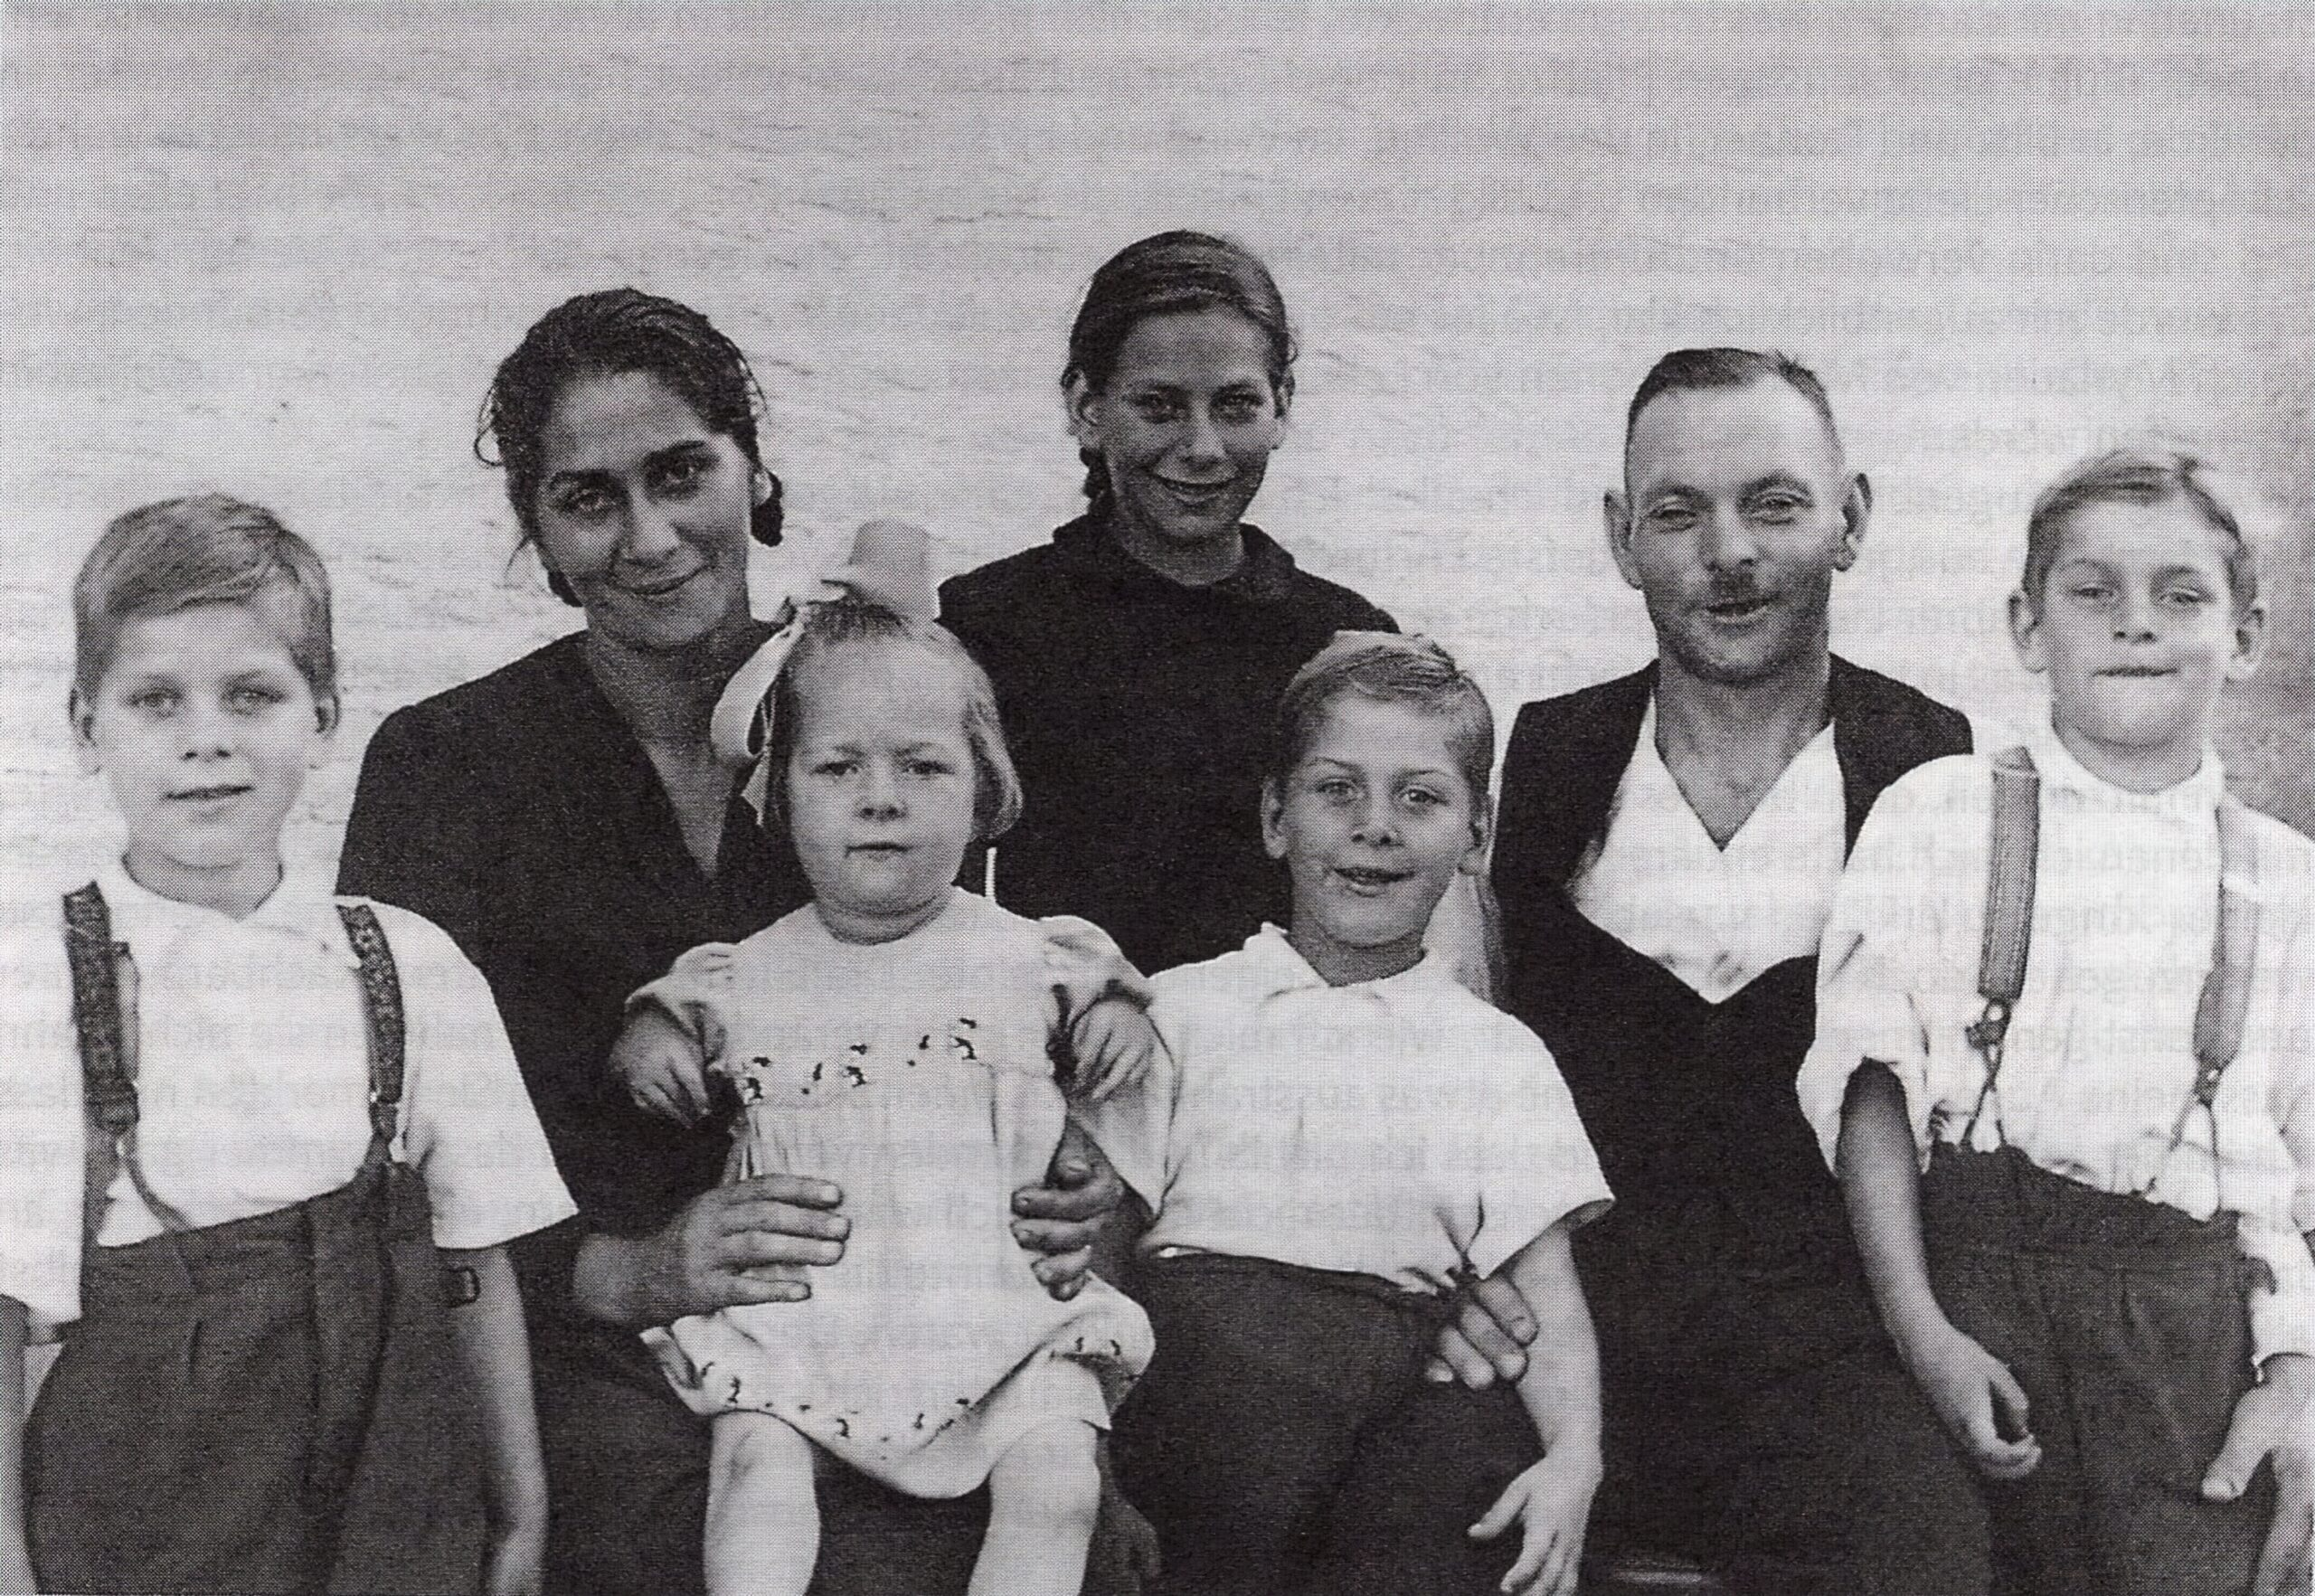 The Meier family in the year 1945